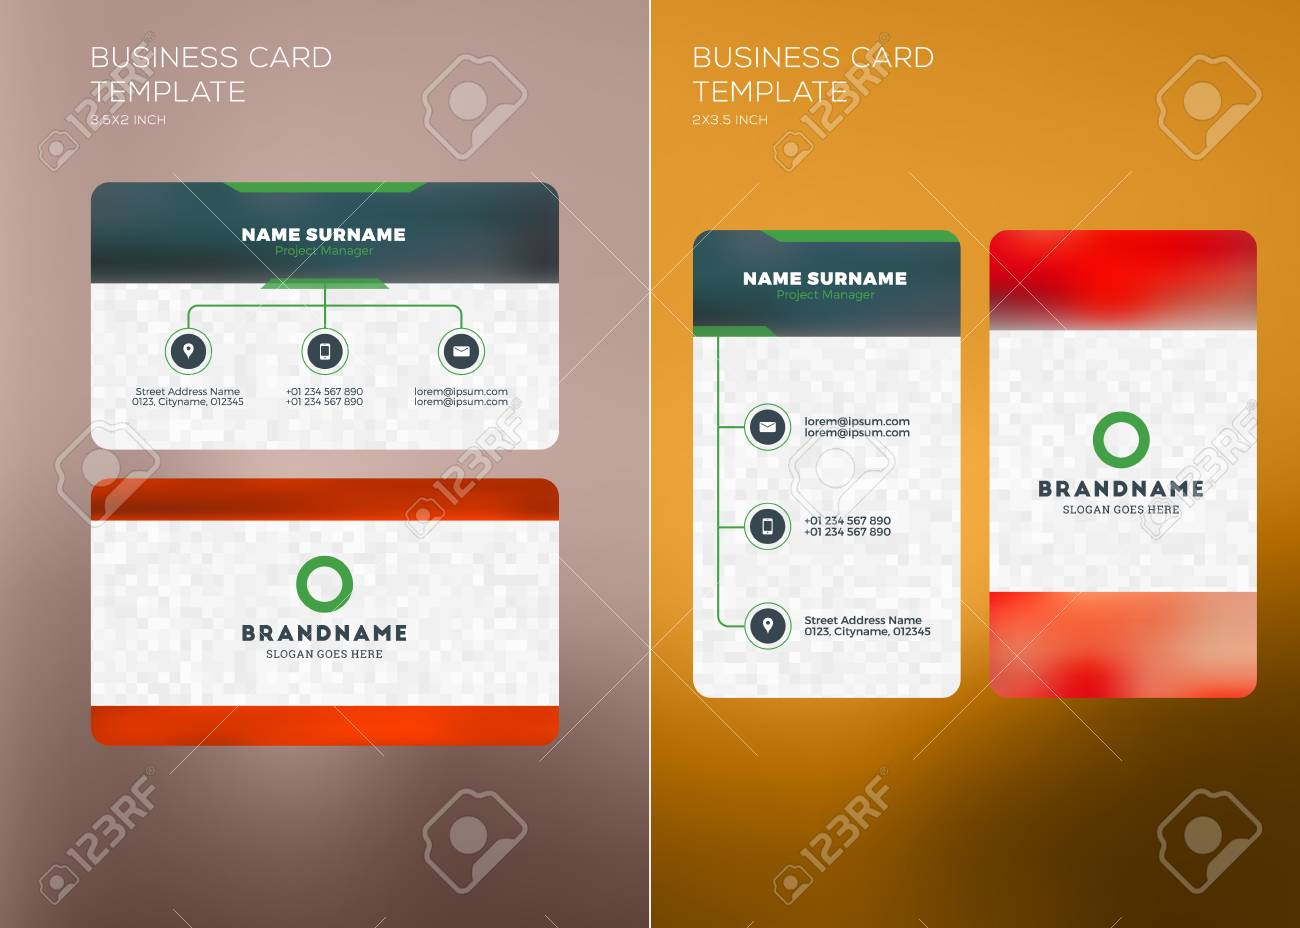 Corporate business card print template personal visiting card corporate business card print template personal visiting card with company logo vertical and horizontal reheart Choice Image